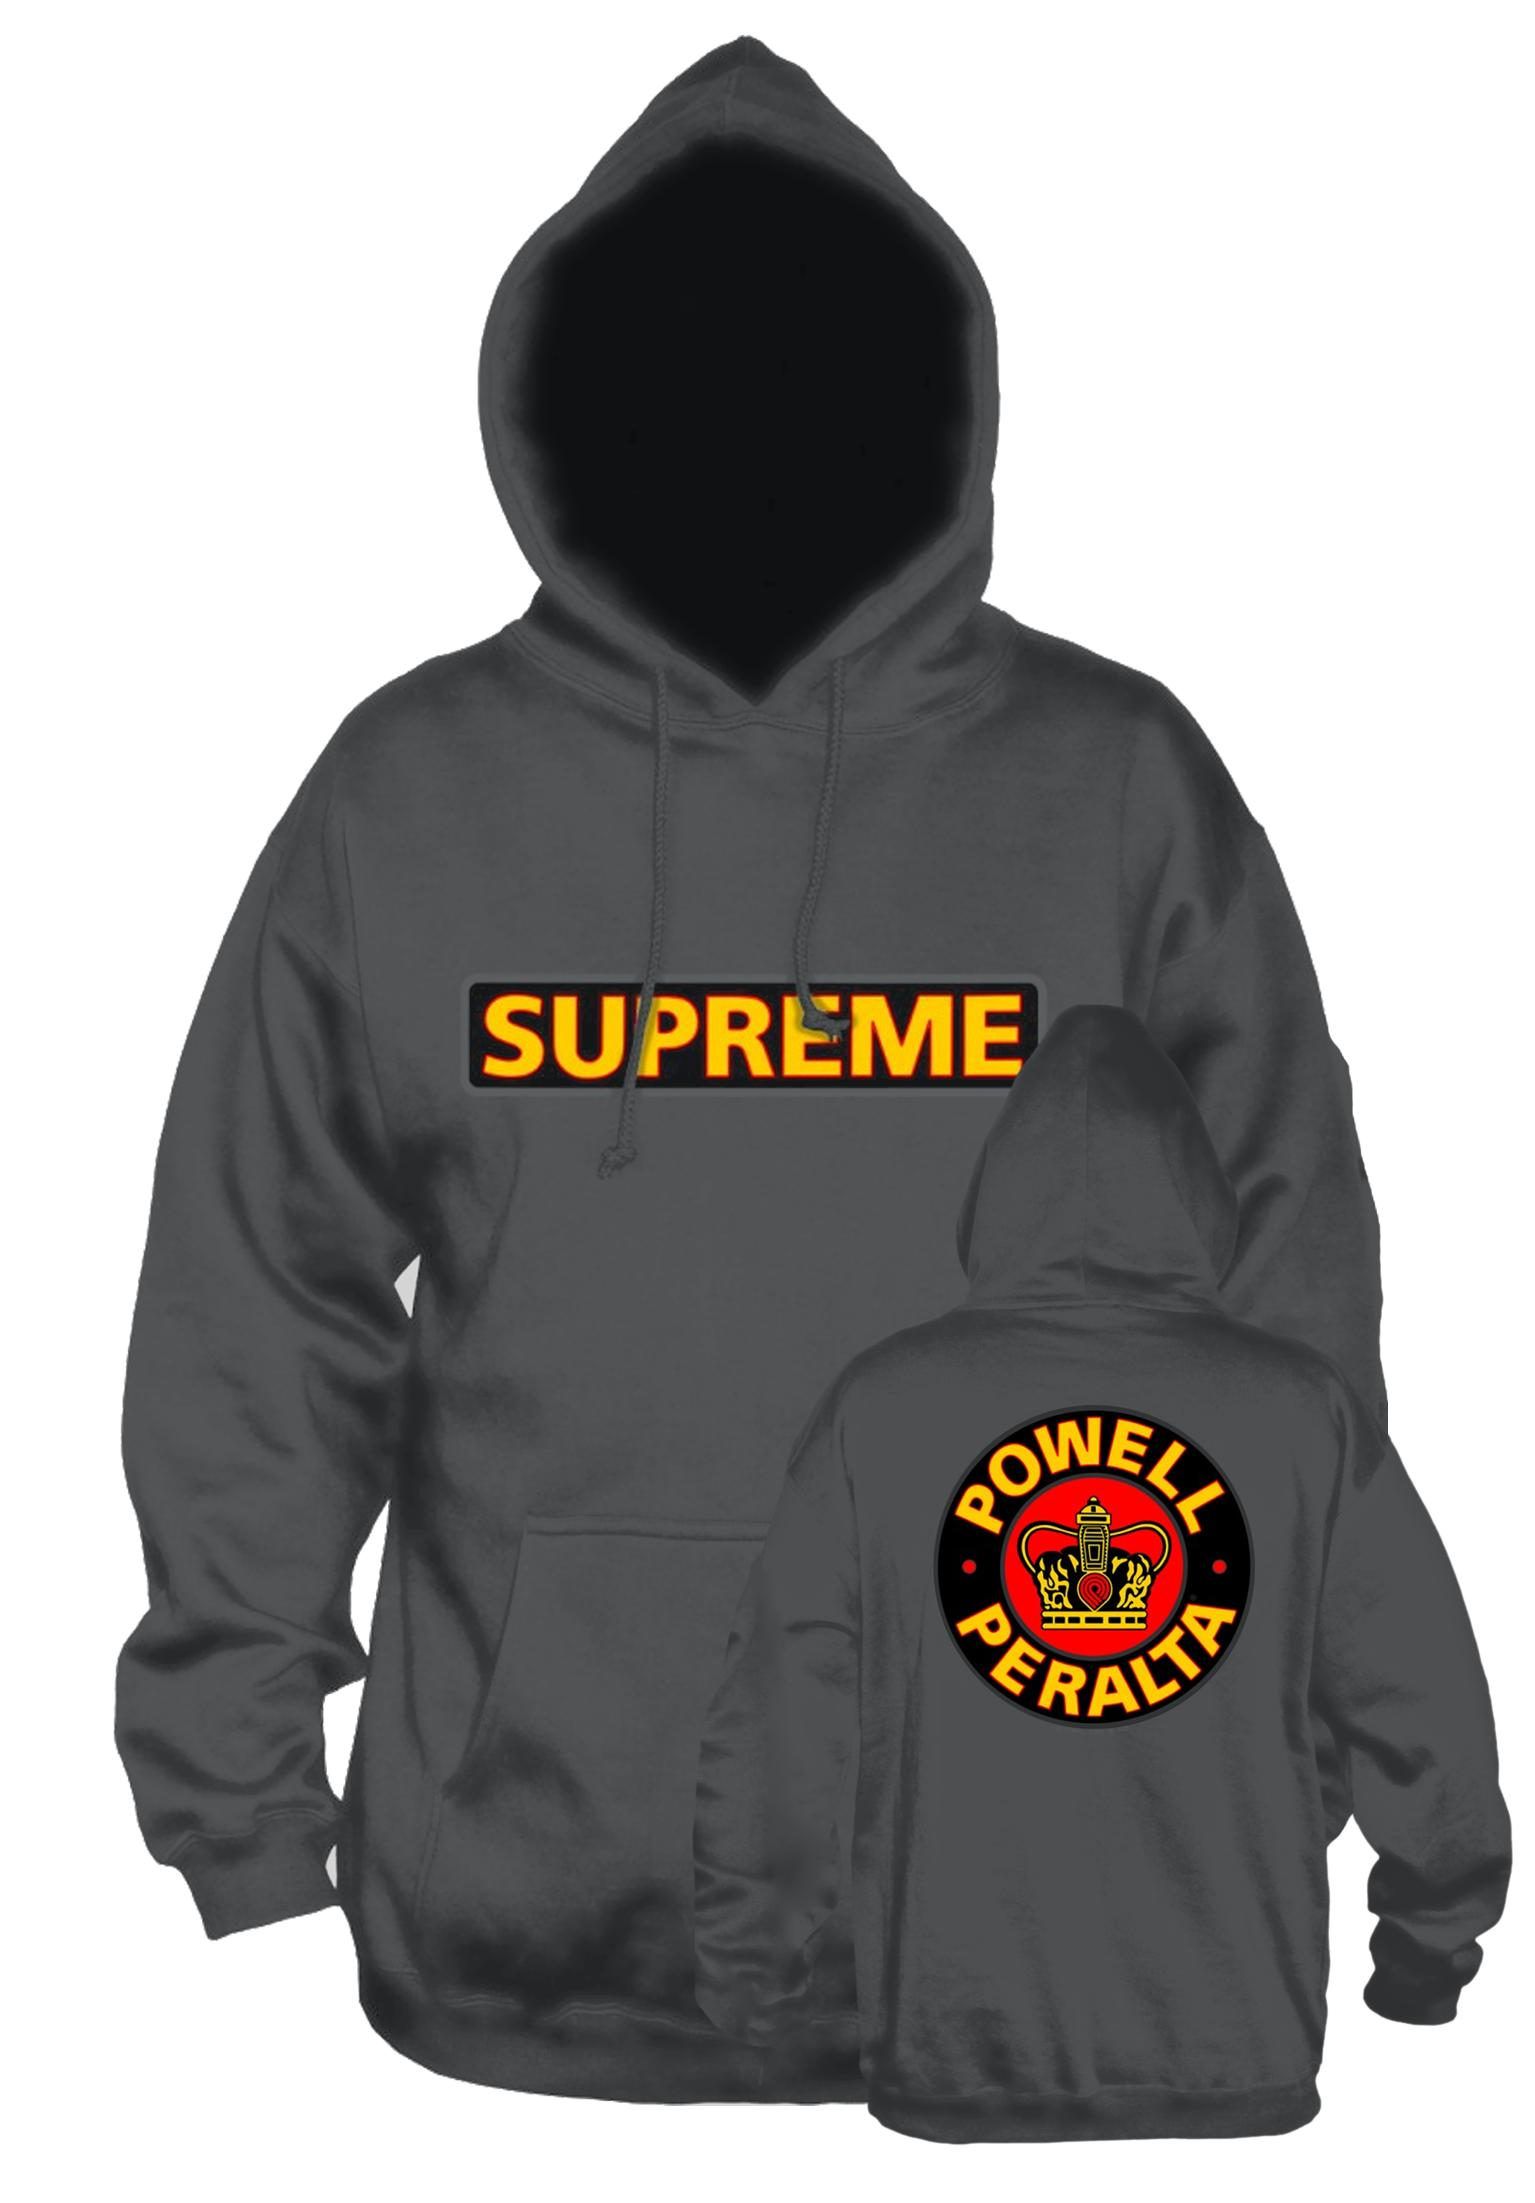 supreme medium weight powell peralta hoodies in charcoal. Black Bedroom Furniture Sets. Home Design Ideas